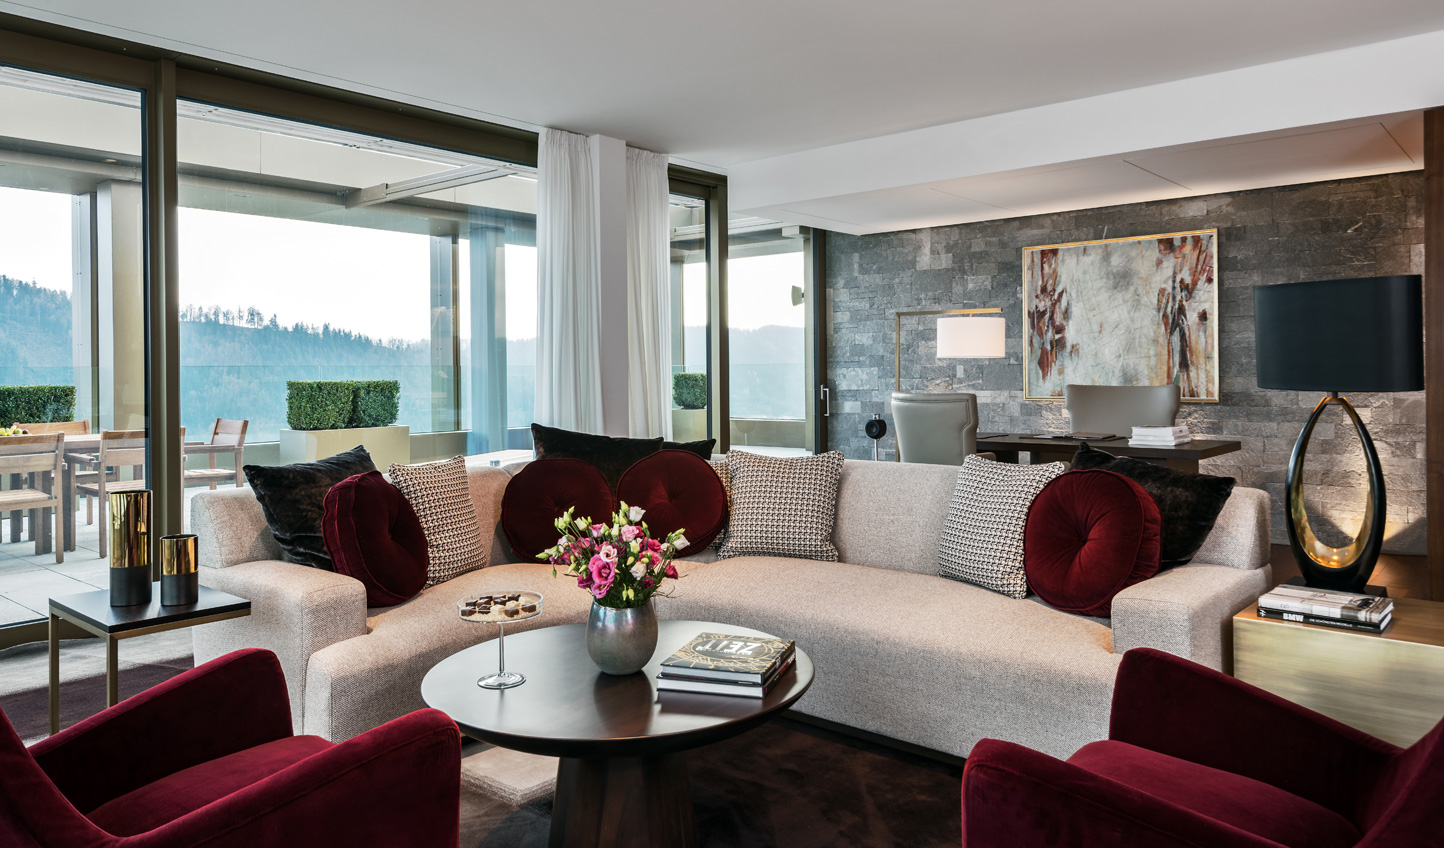 The Bürgenstock Hotel creates a home from home